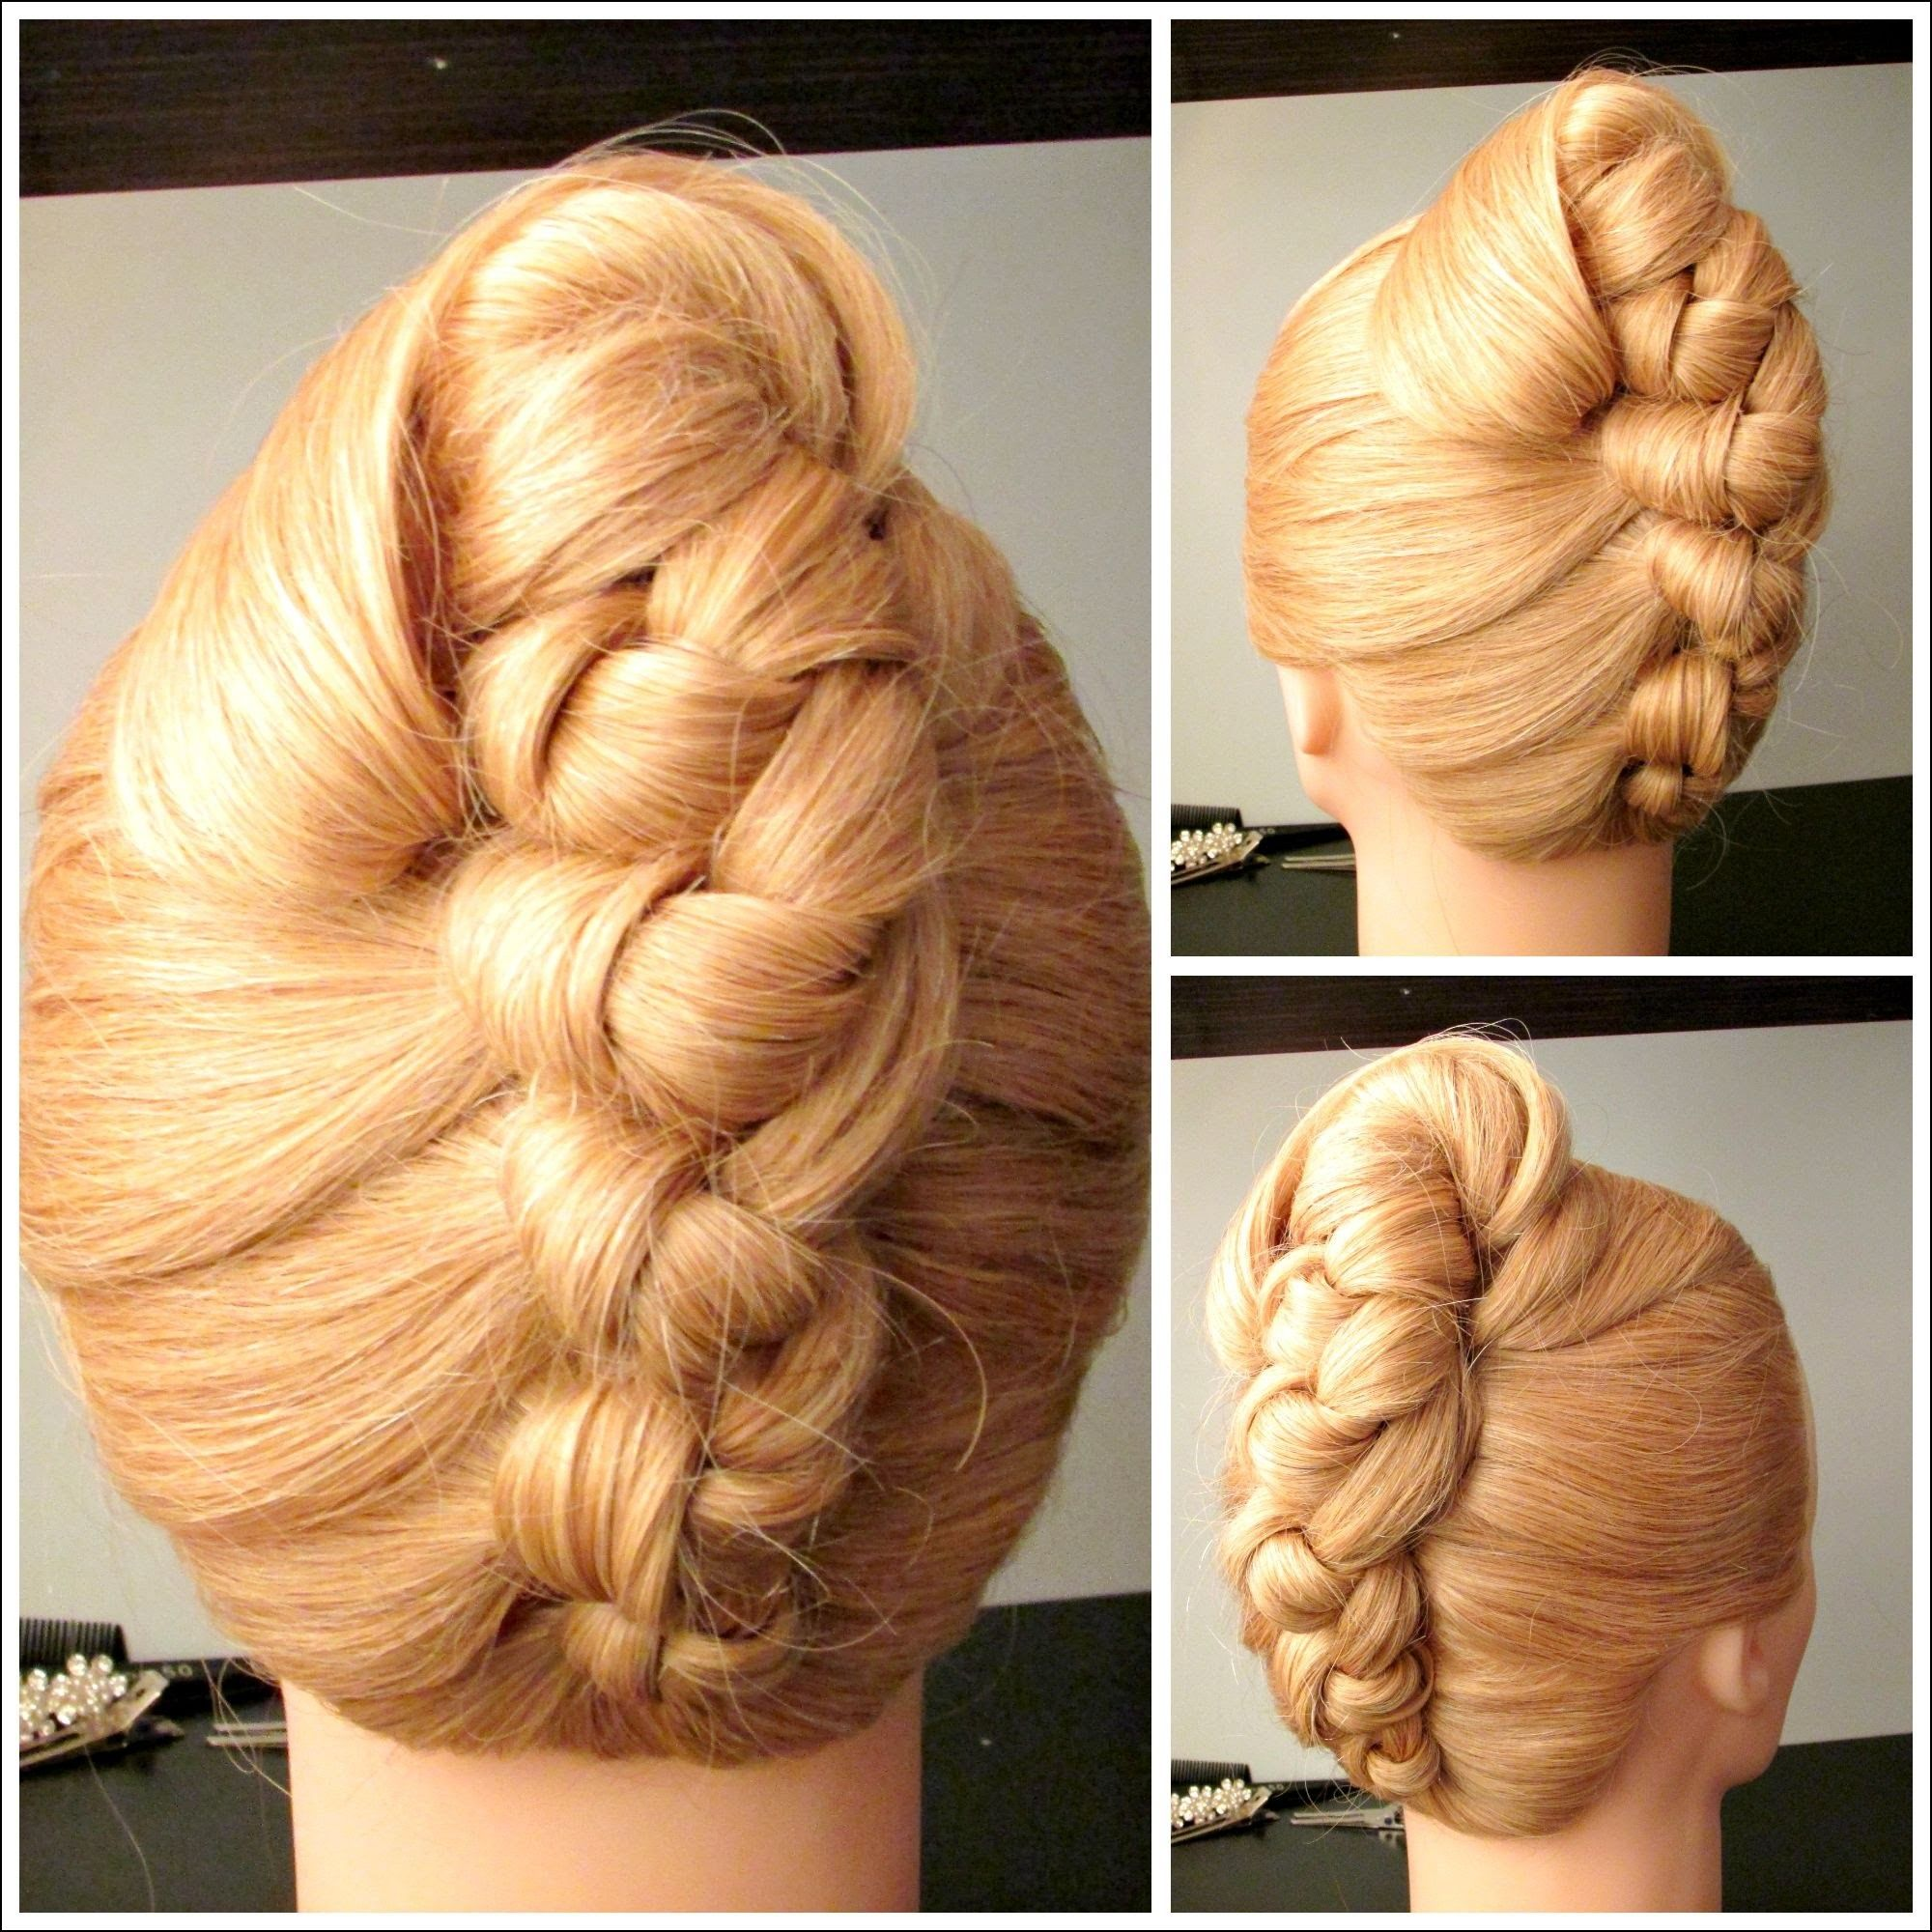 Wedding french roll hairstyle hairstyles ideas pinterest